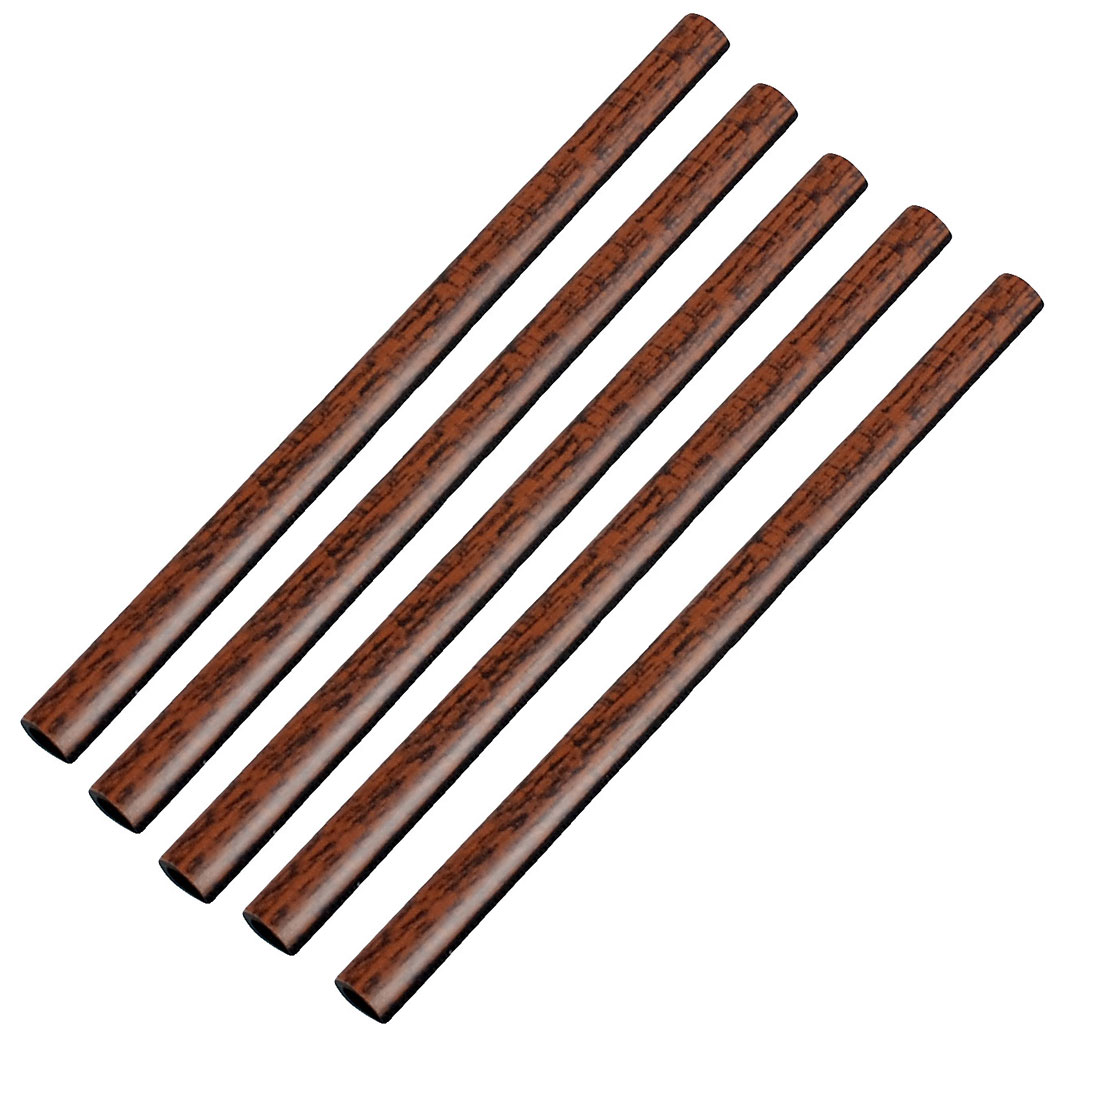 Brown Window Plastic Filter Decor Air Intake Inlet Tube 5 Pcs for Auto Car